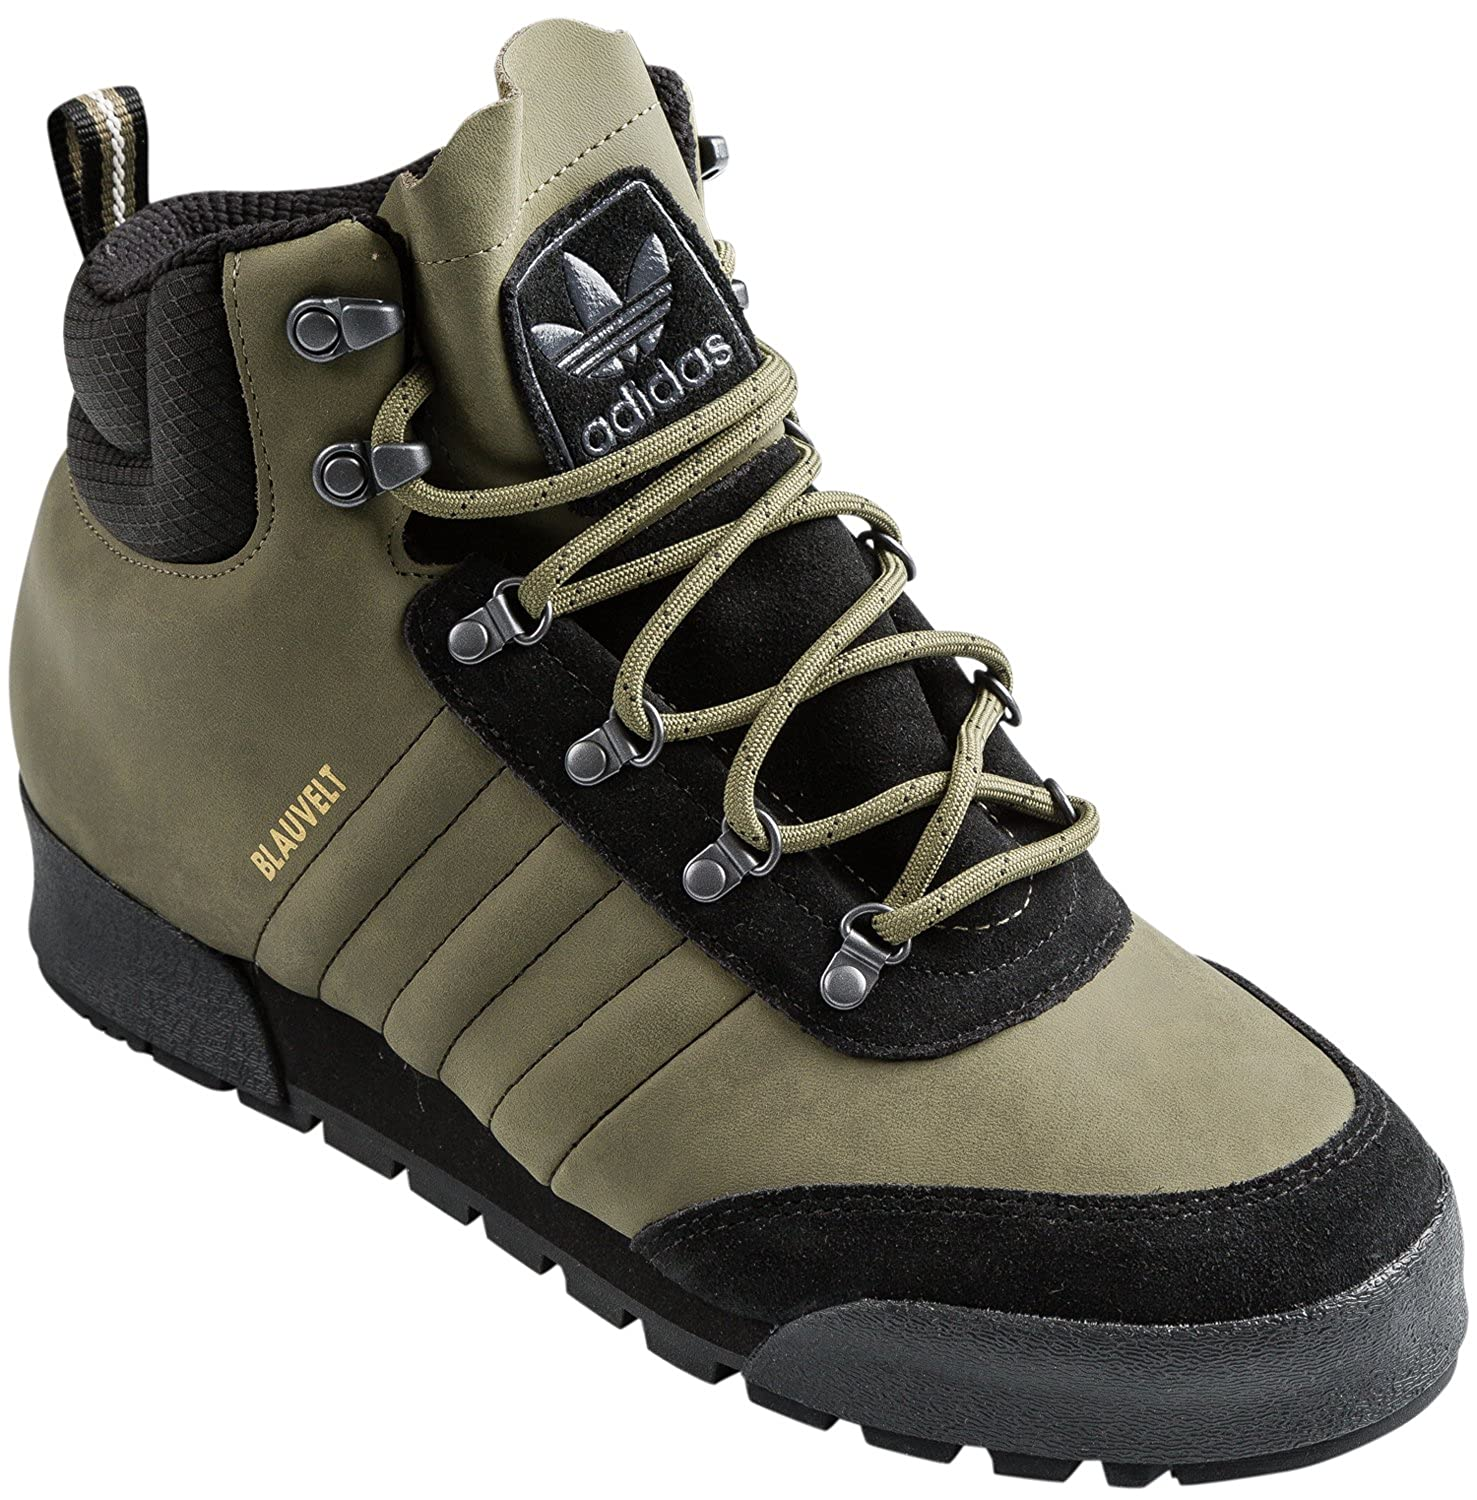 2017 Top Popular adidas Jake Boot 2.0 Olive Cargo Core